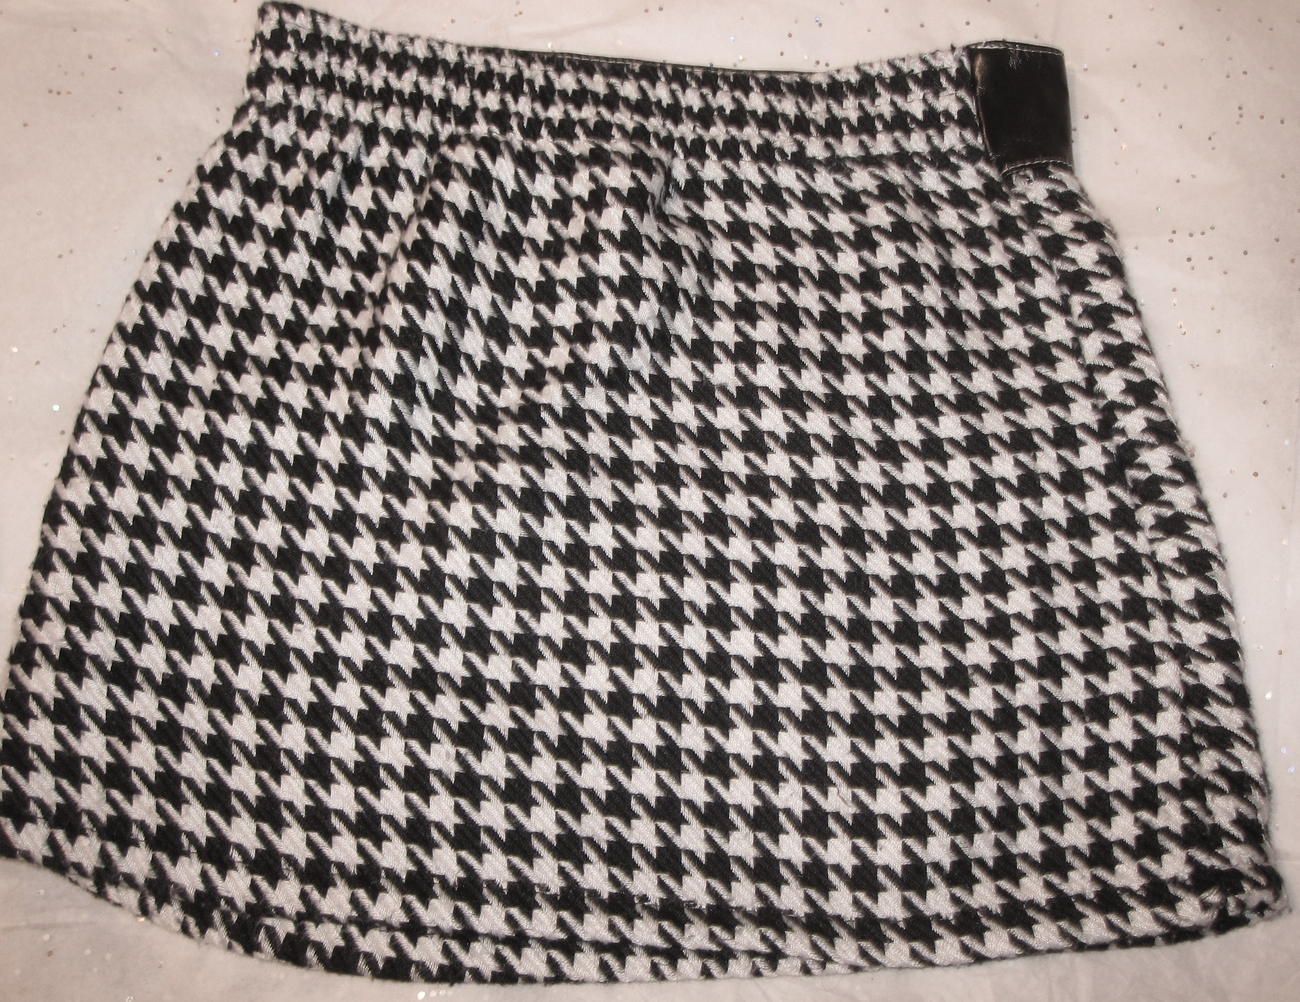 Kate and Ashley Girls Houndstooth Skirt Size 6x